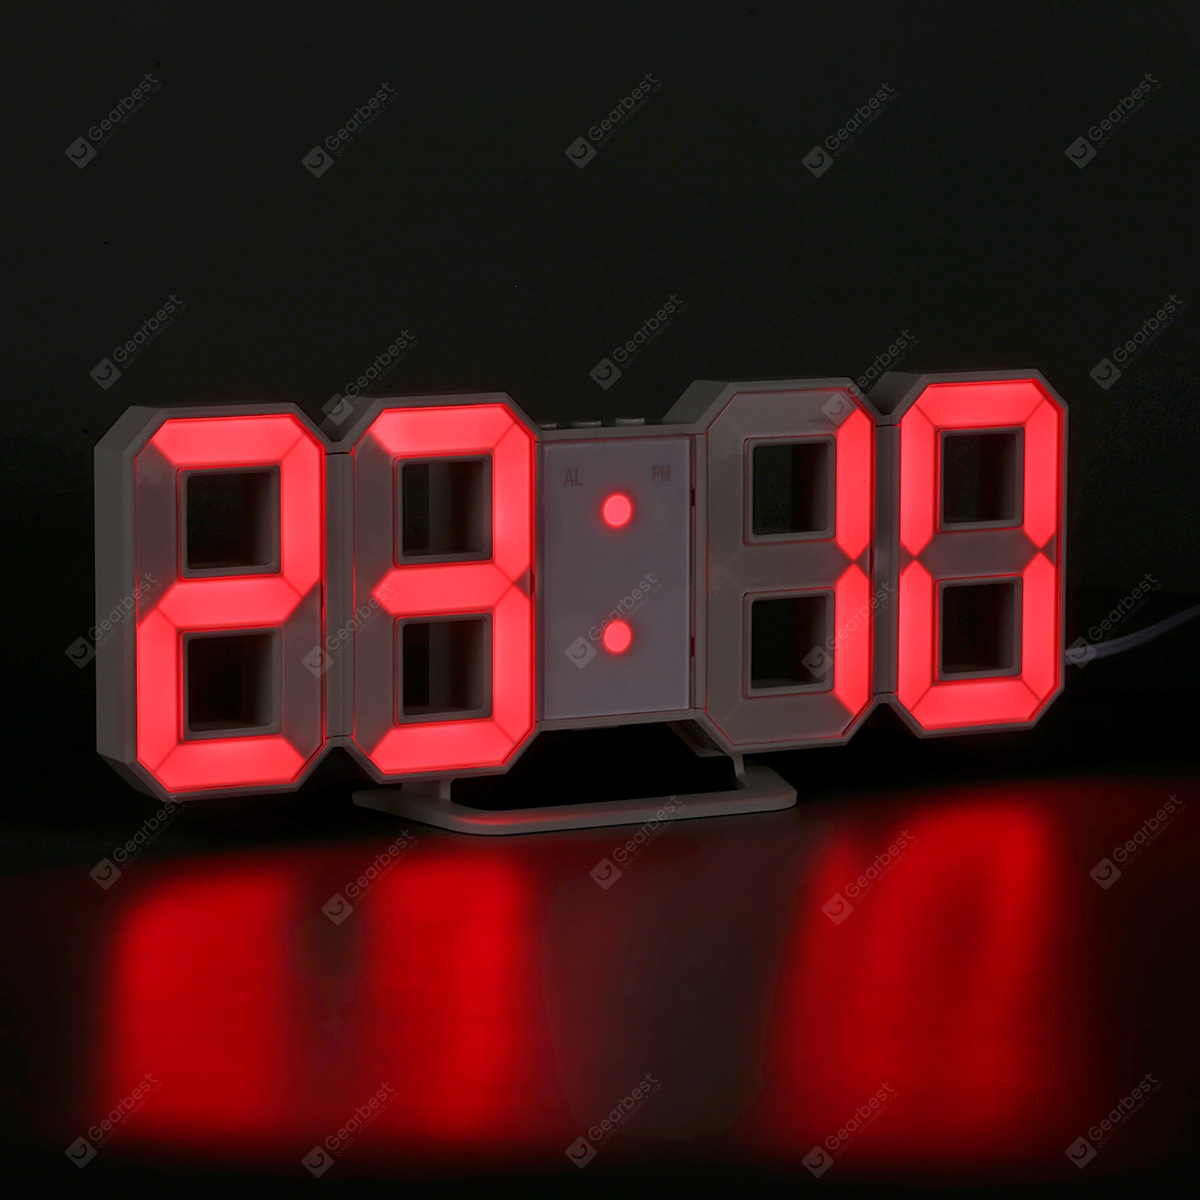 Red LED Digital Numbers Wall Clock with